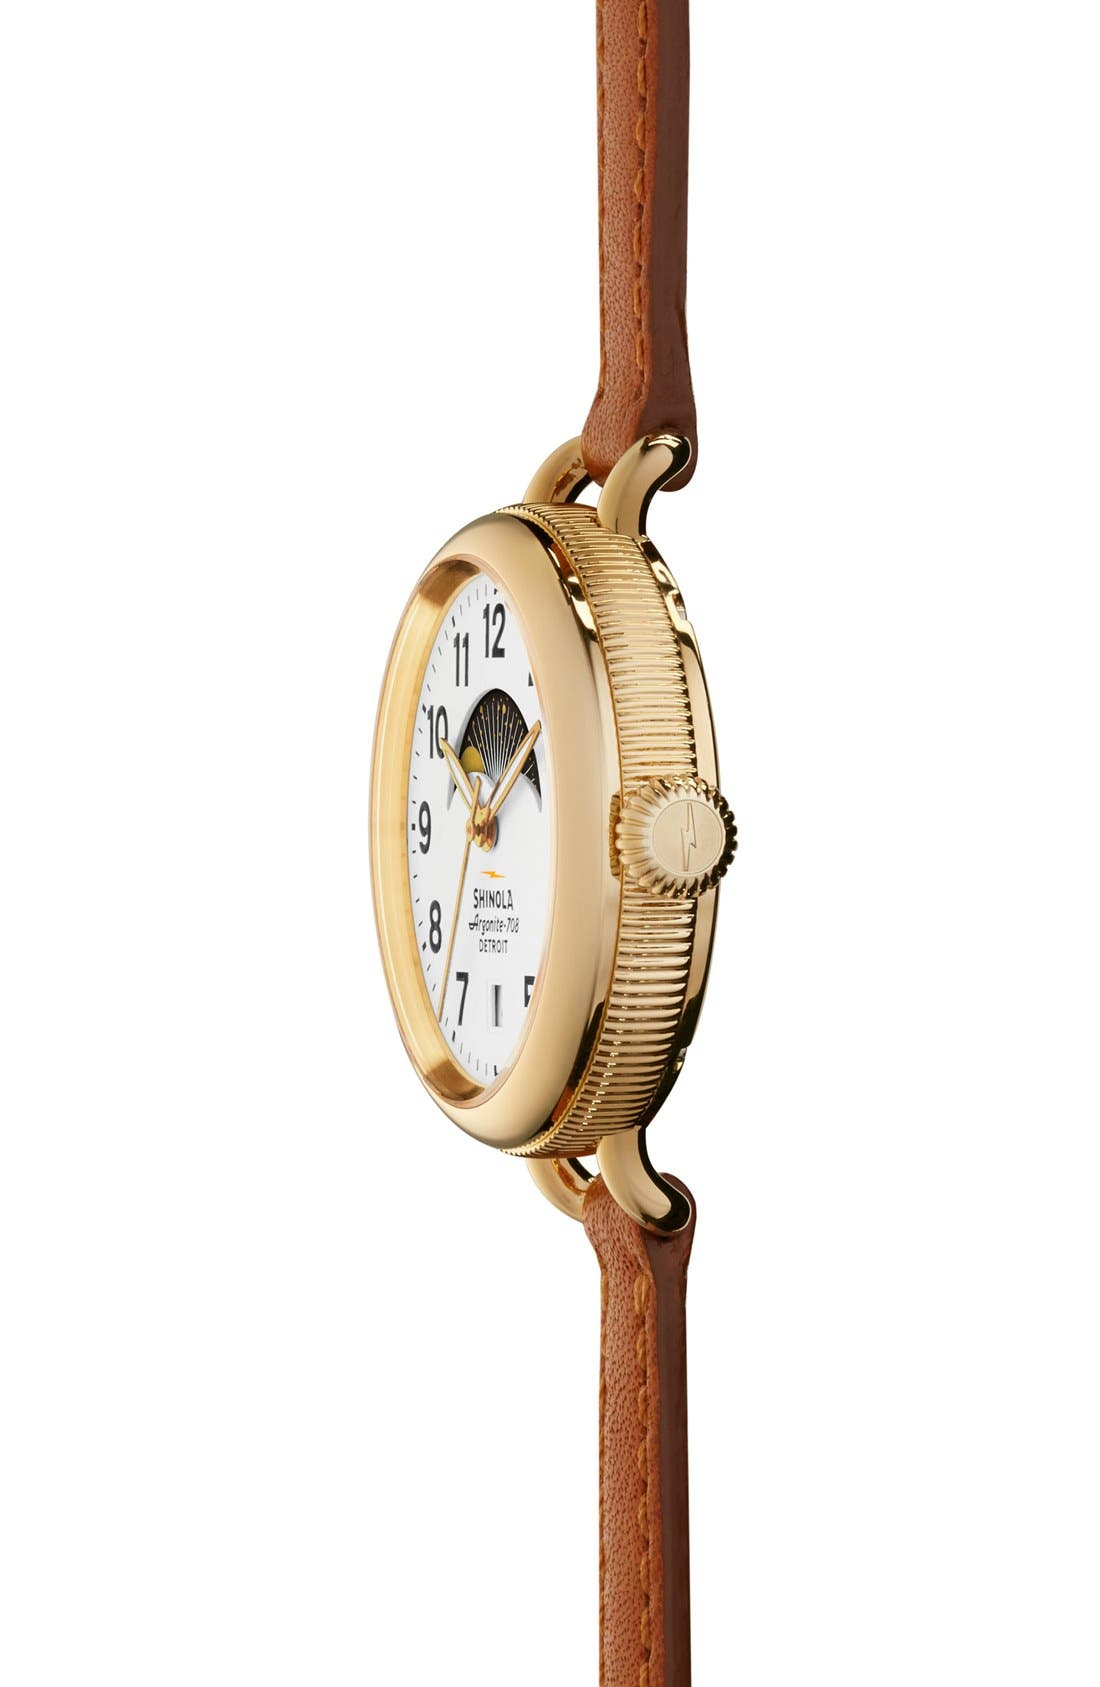 SHINOLA, The Birdy Moon Phase Leather Strap Watch, 34mm, Alternate thumbnail 3, color, 200